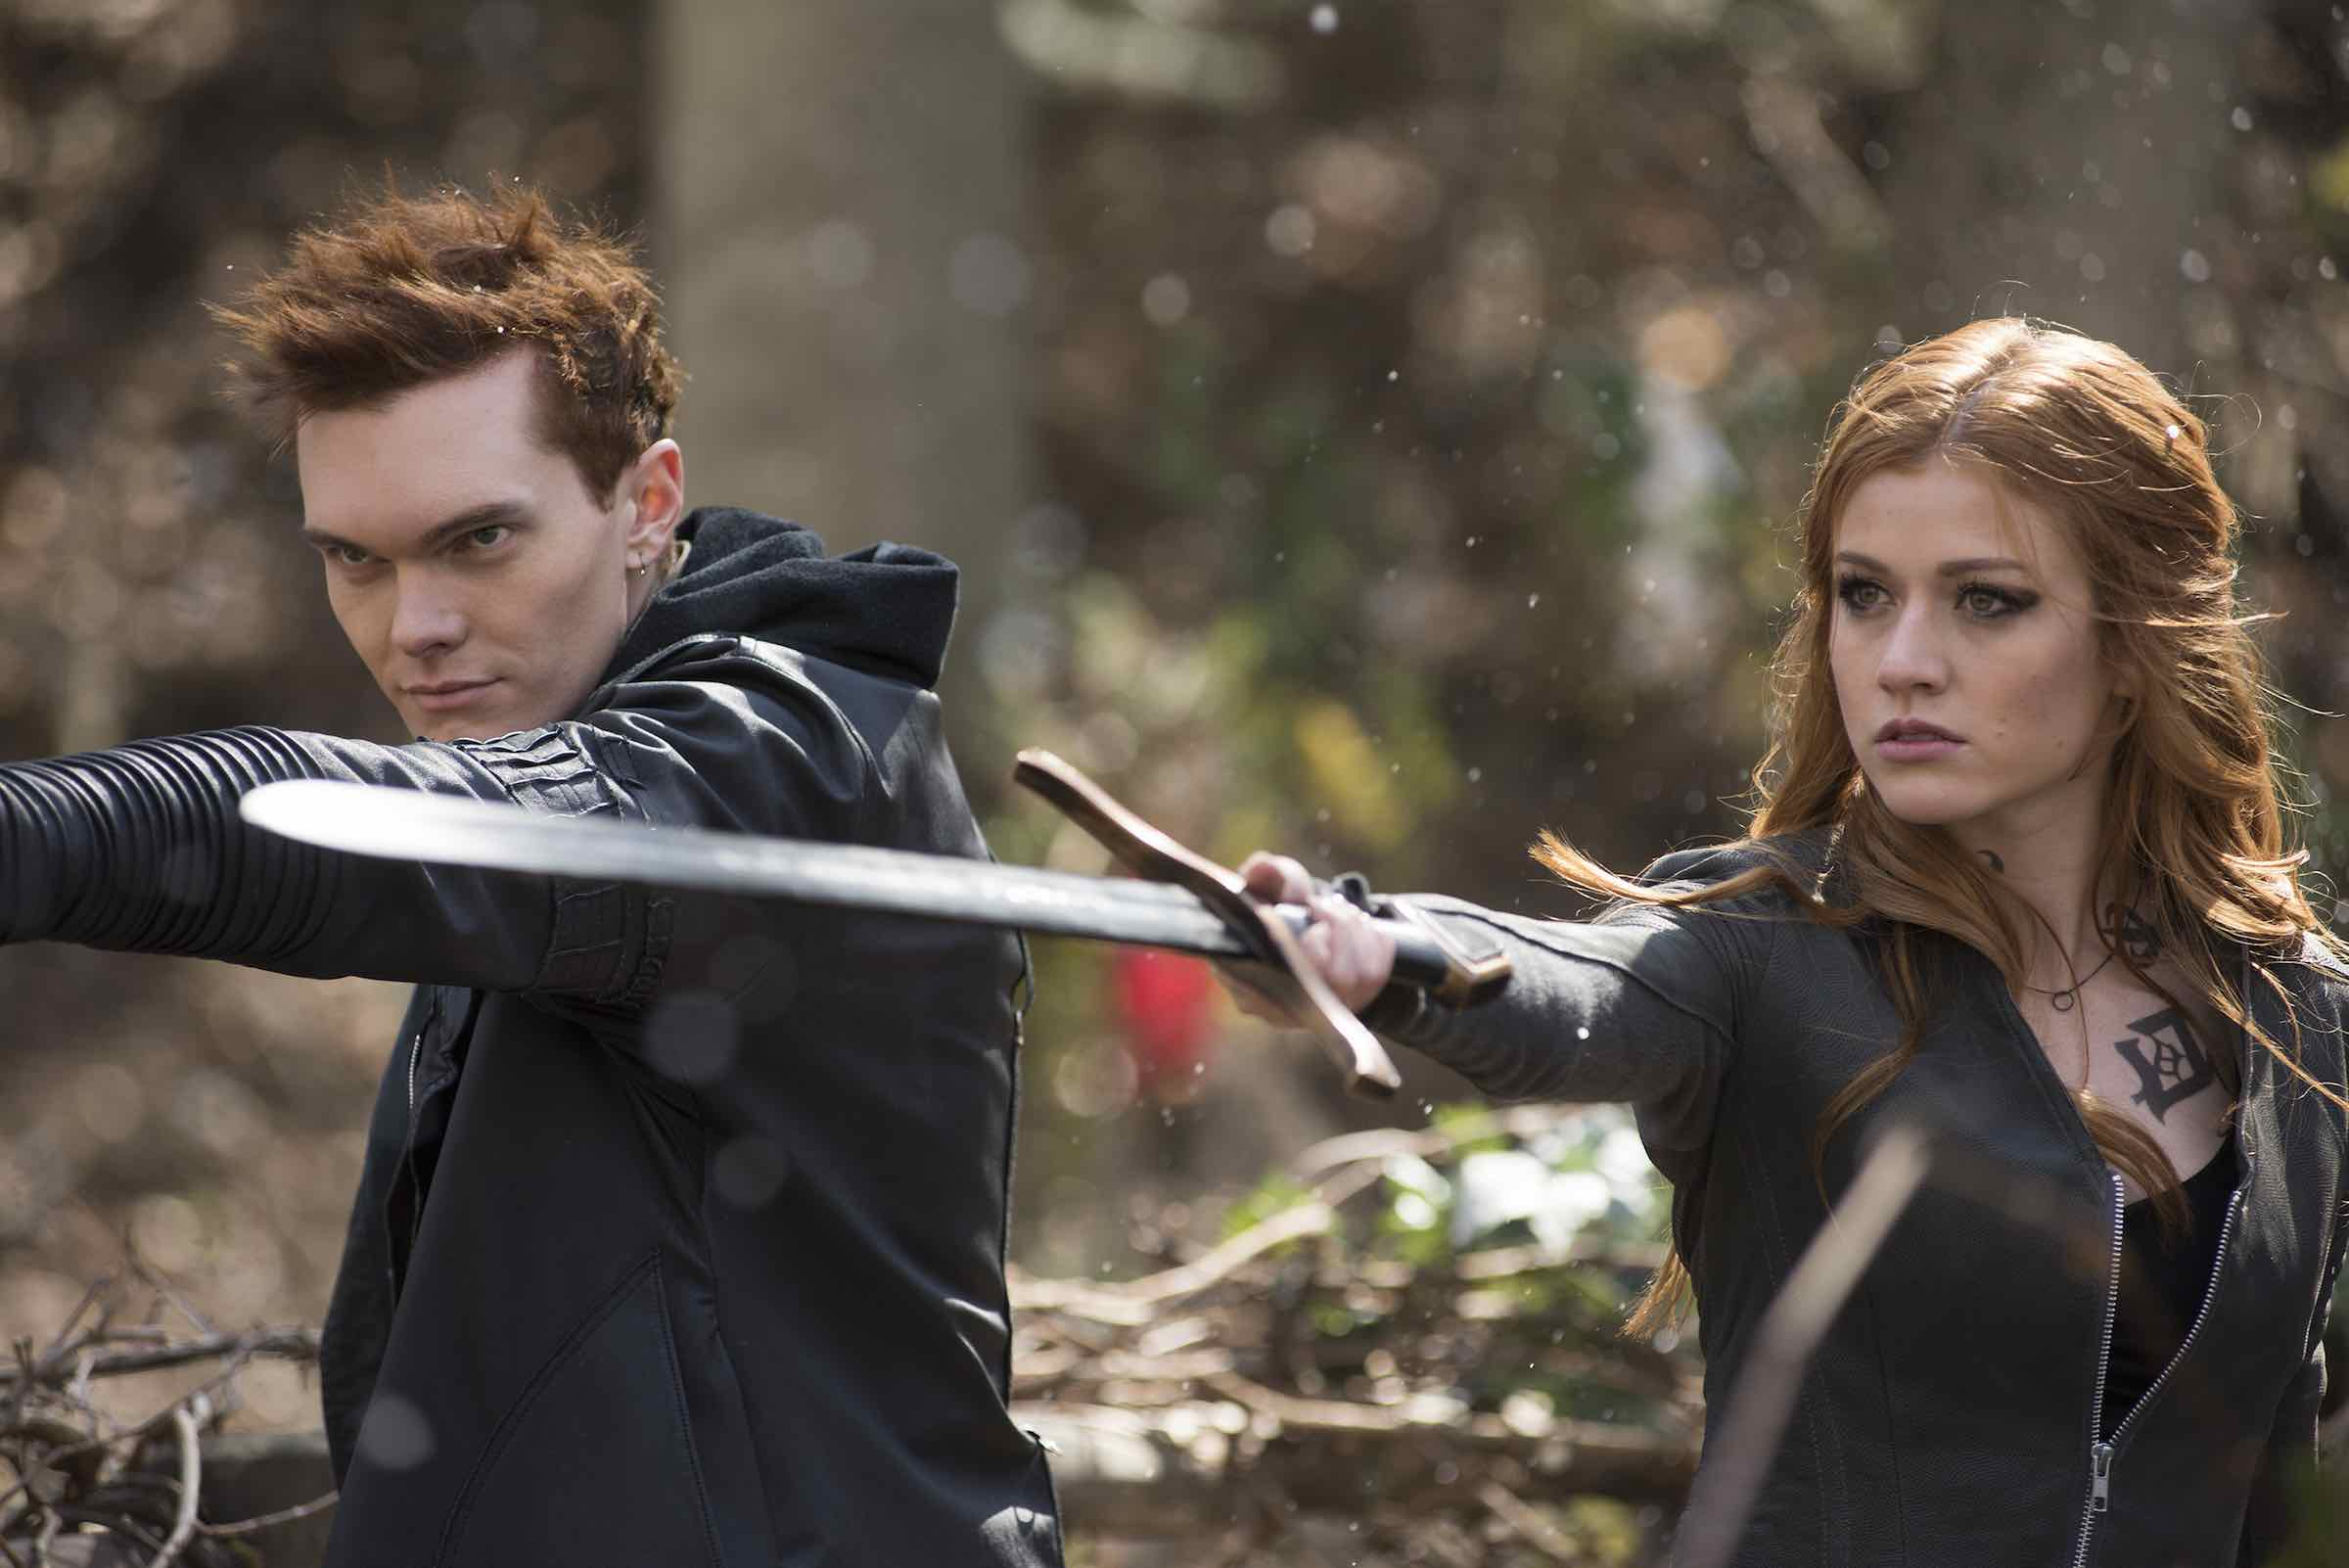 We're still holding out for the #SaveShadowhunters campaign to work and save 'Shadowhunters'. Today the cast speaks about the ending of our show.